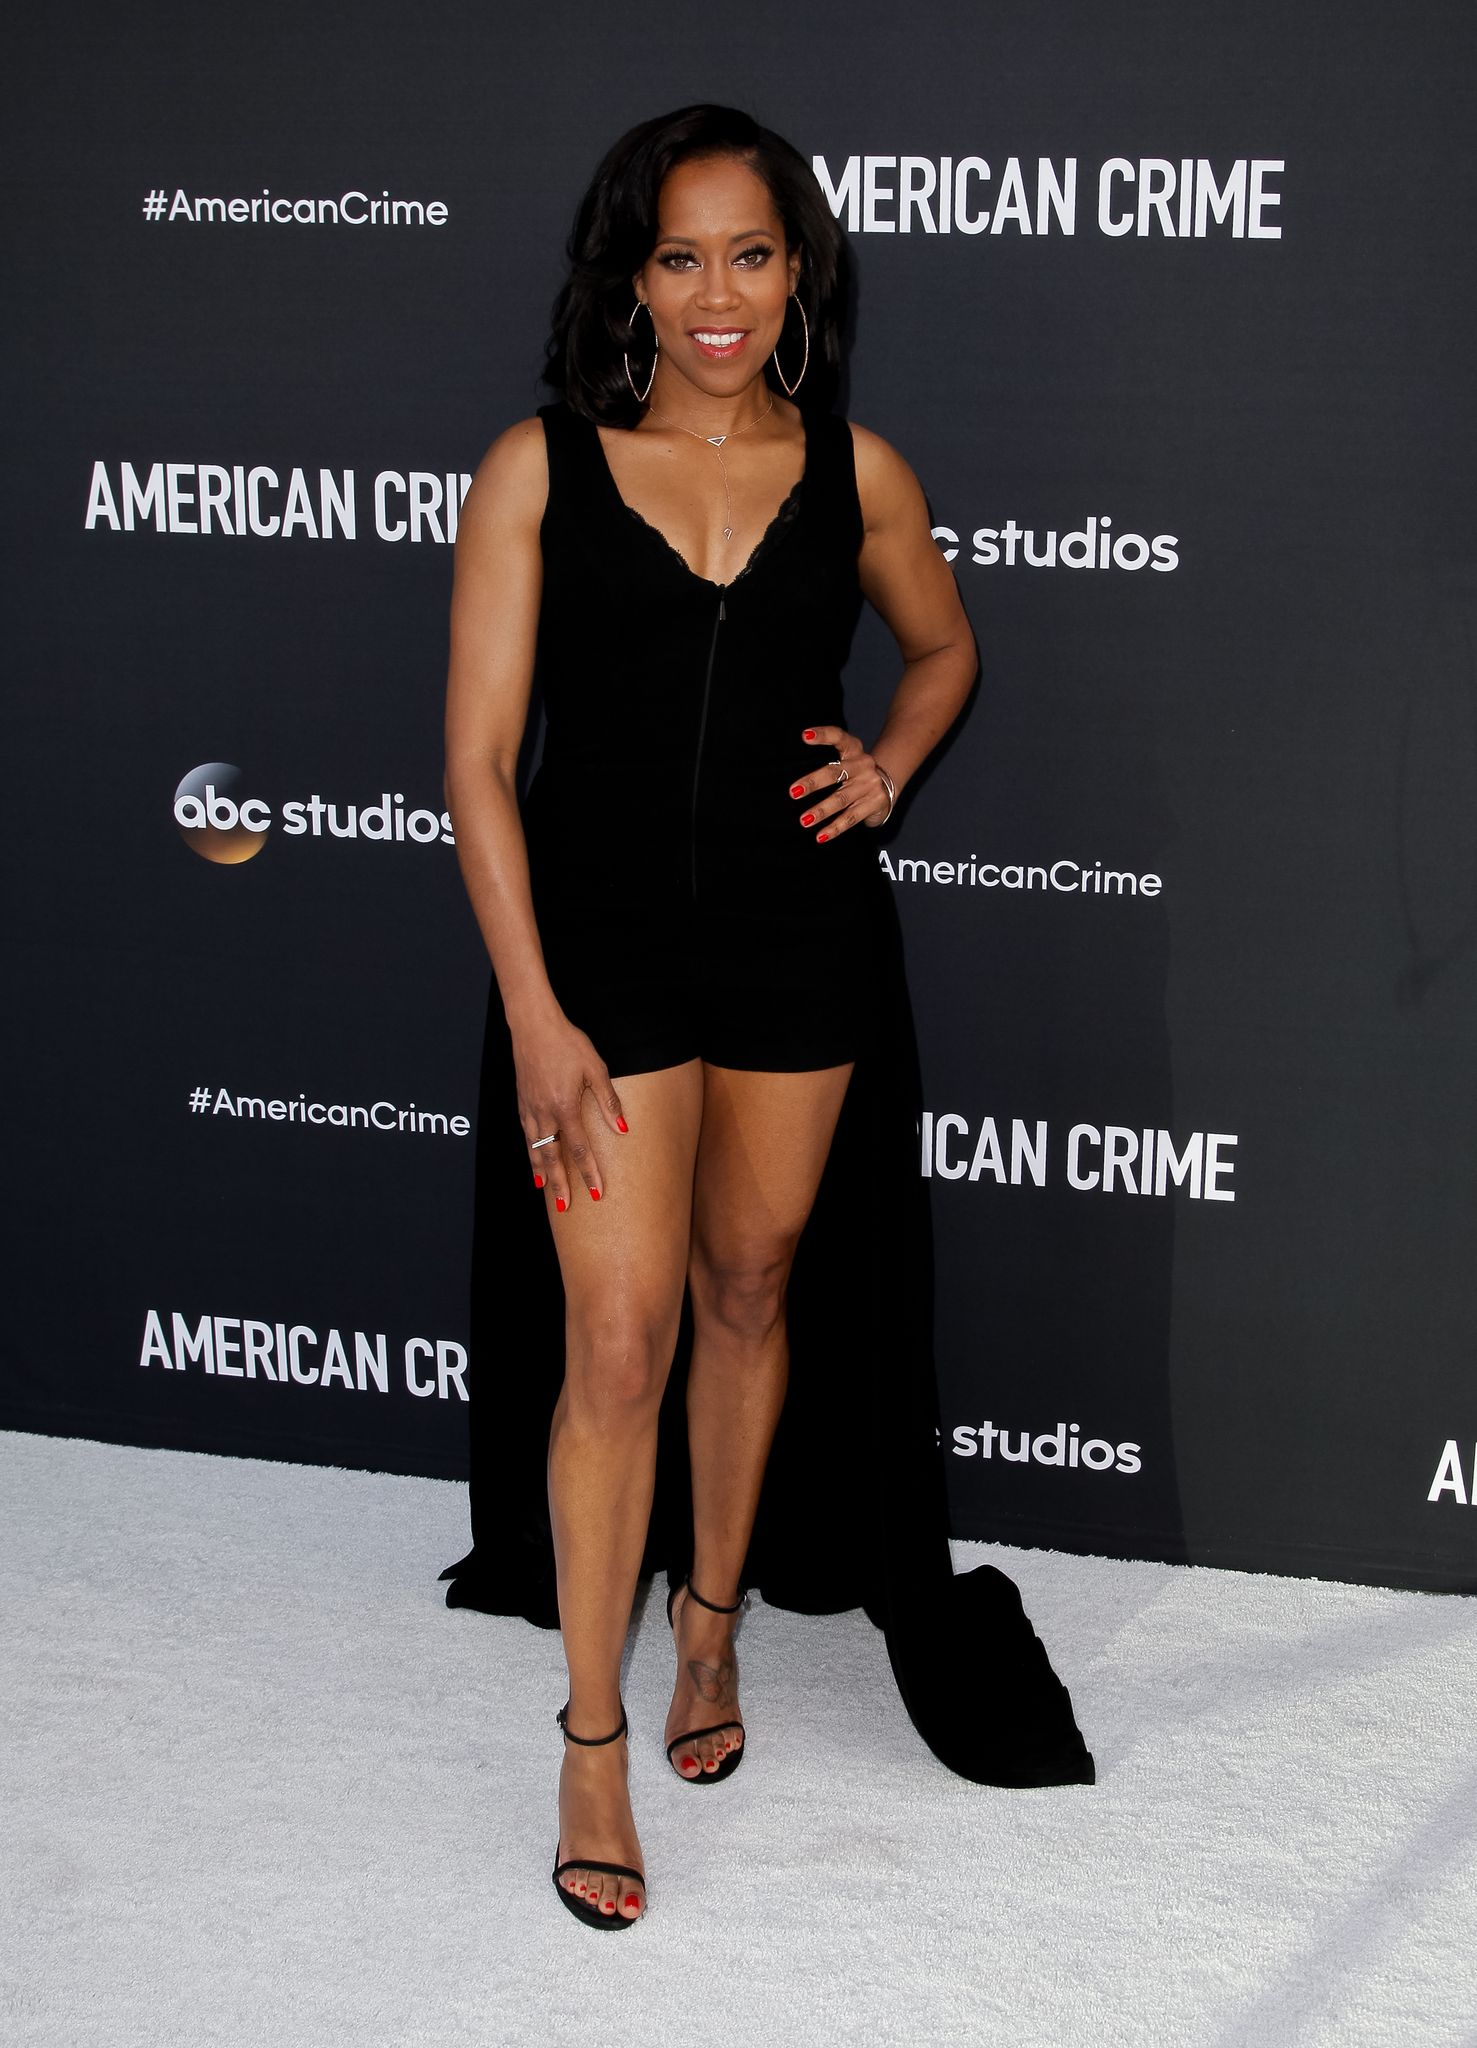 Regina King at the FYC event for ABC's 'American Crime' on April 29, 2017 in California.   Photo: Getty Images